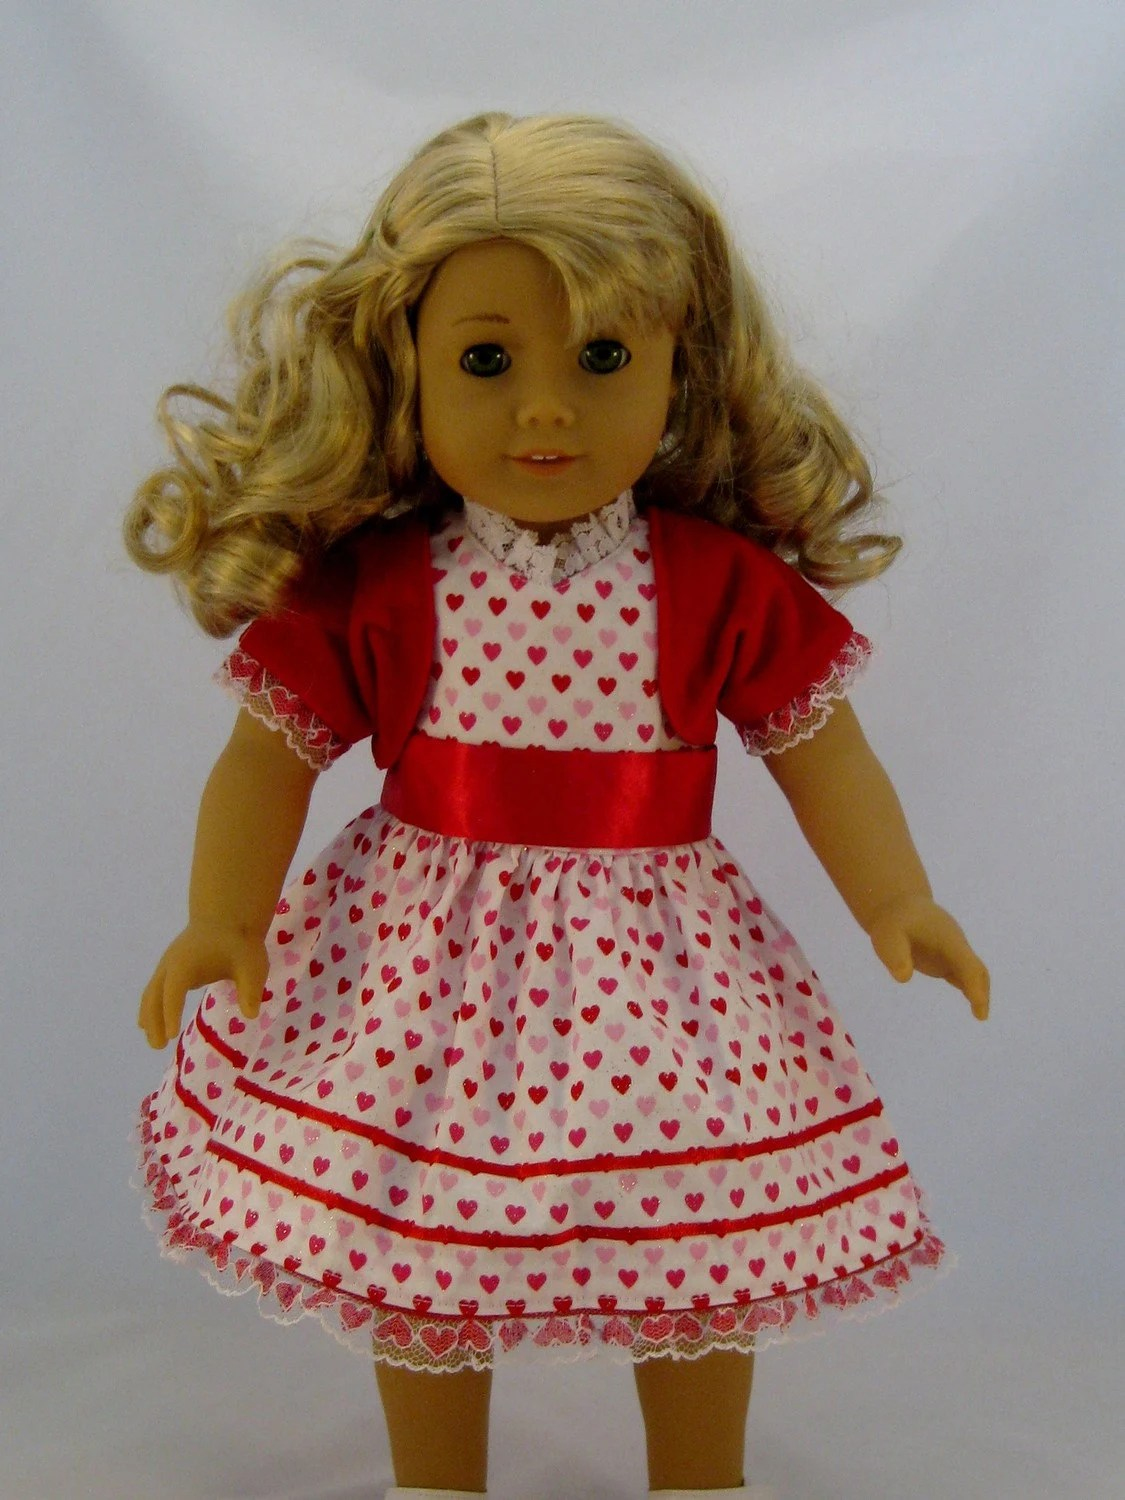 Valentines Day Pink and Red Mini Heart Dress fits American Girl or other 18 inch Dolls